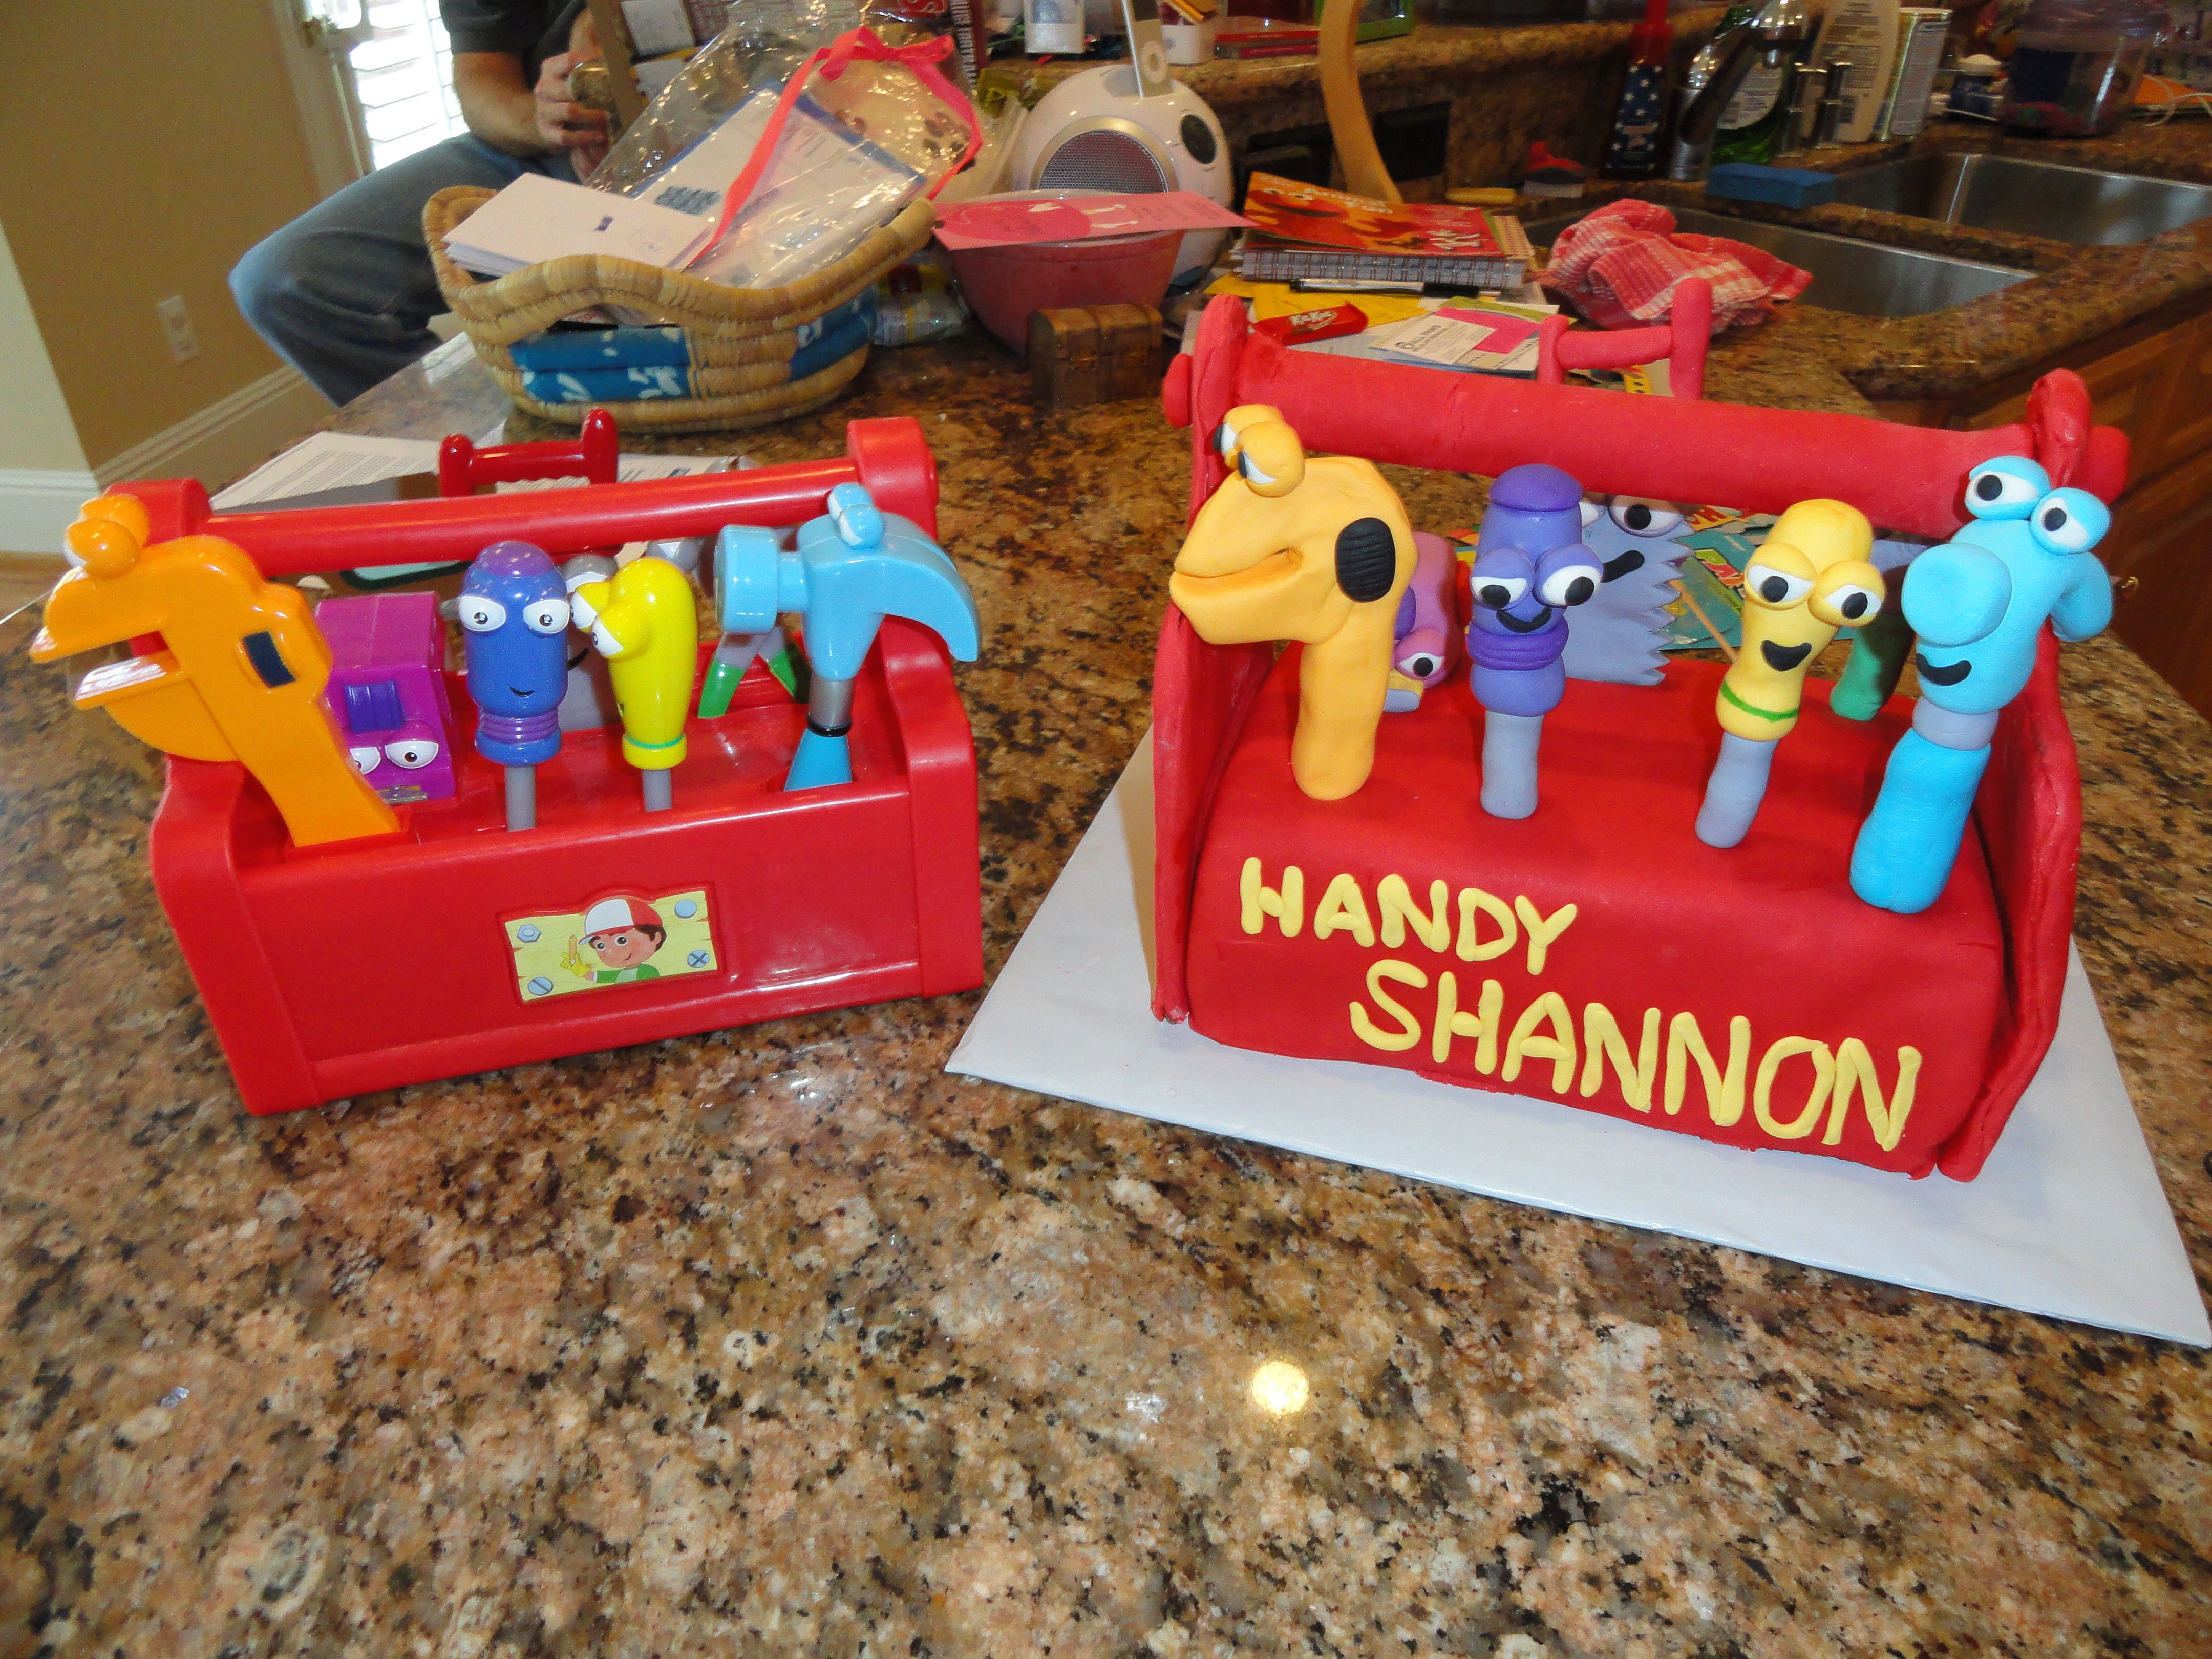 Handy Shannon :)  All the tools are gum paste, the tool box is a loaf pan, ends are fondant, handle is a plastic dowel wrapped in fondant.